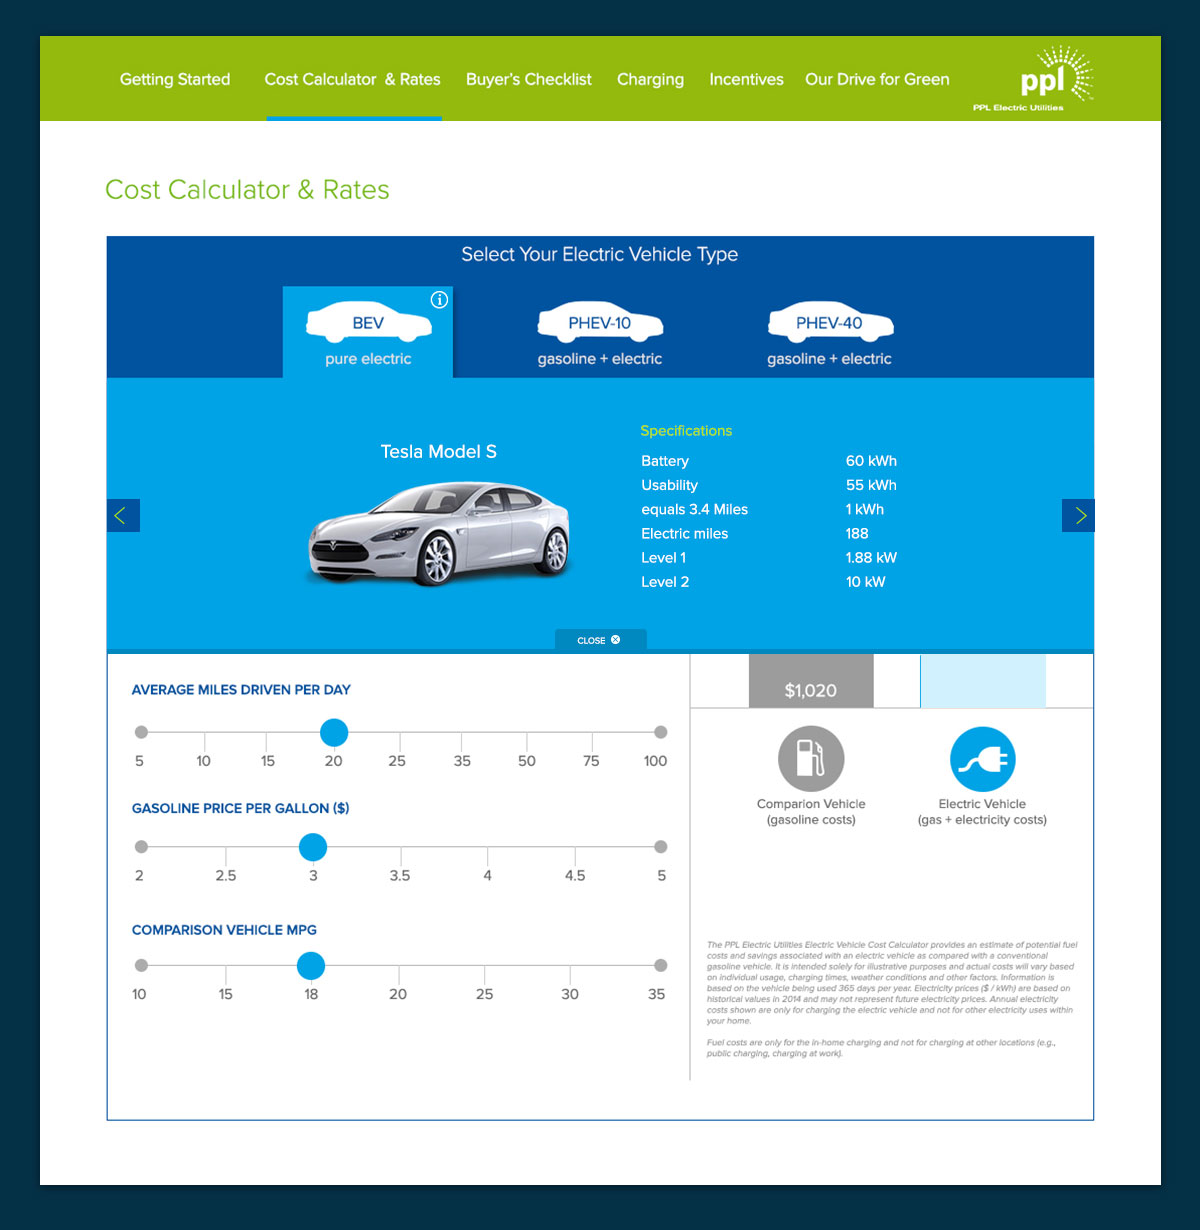 Electric Vehicle Cost Calculator